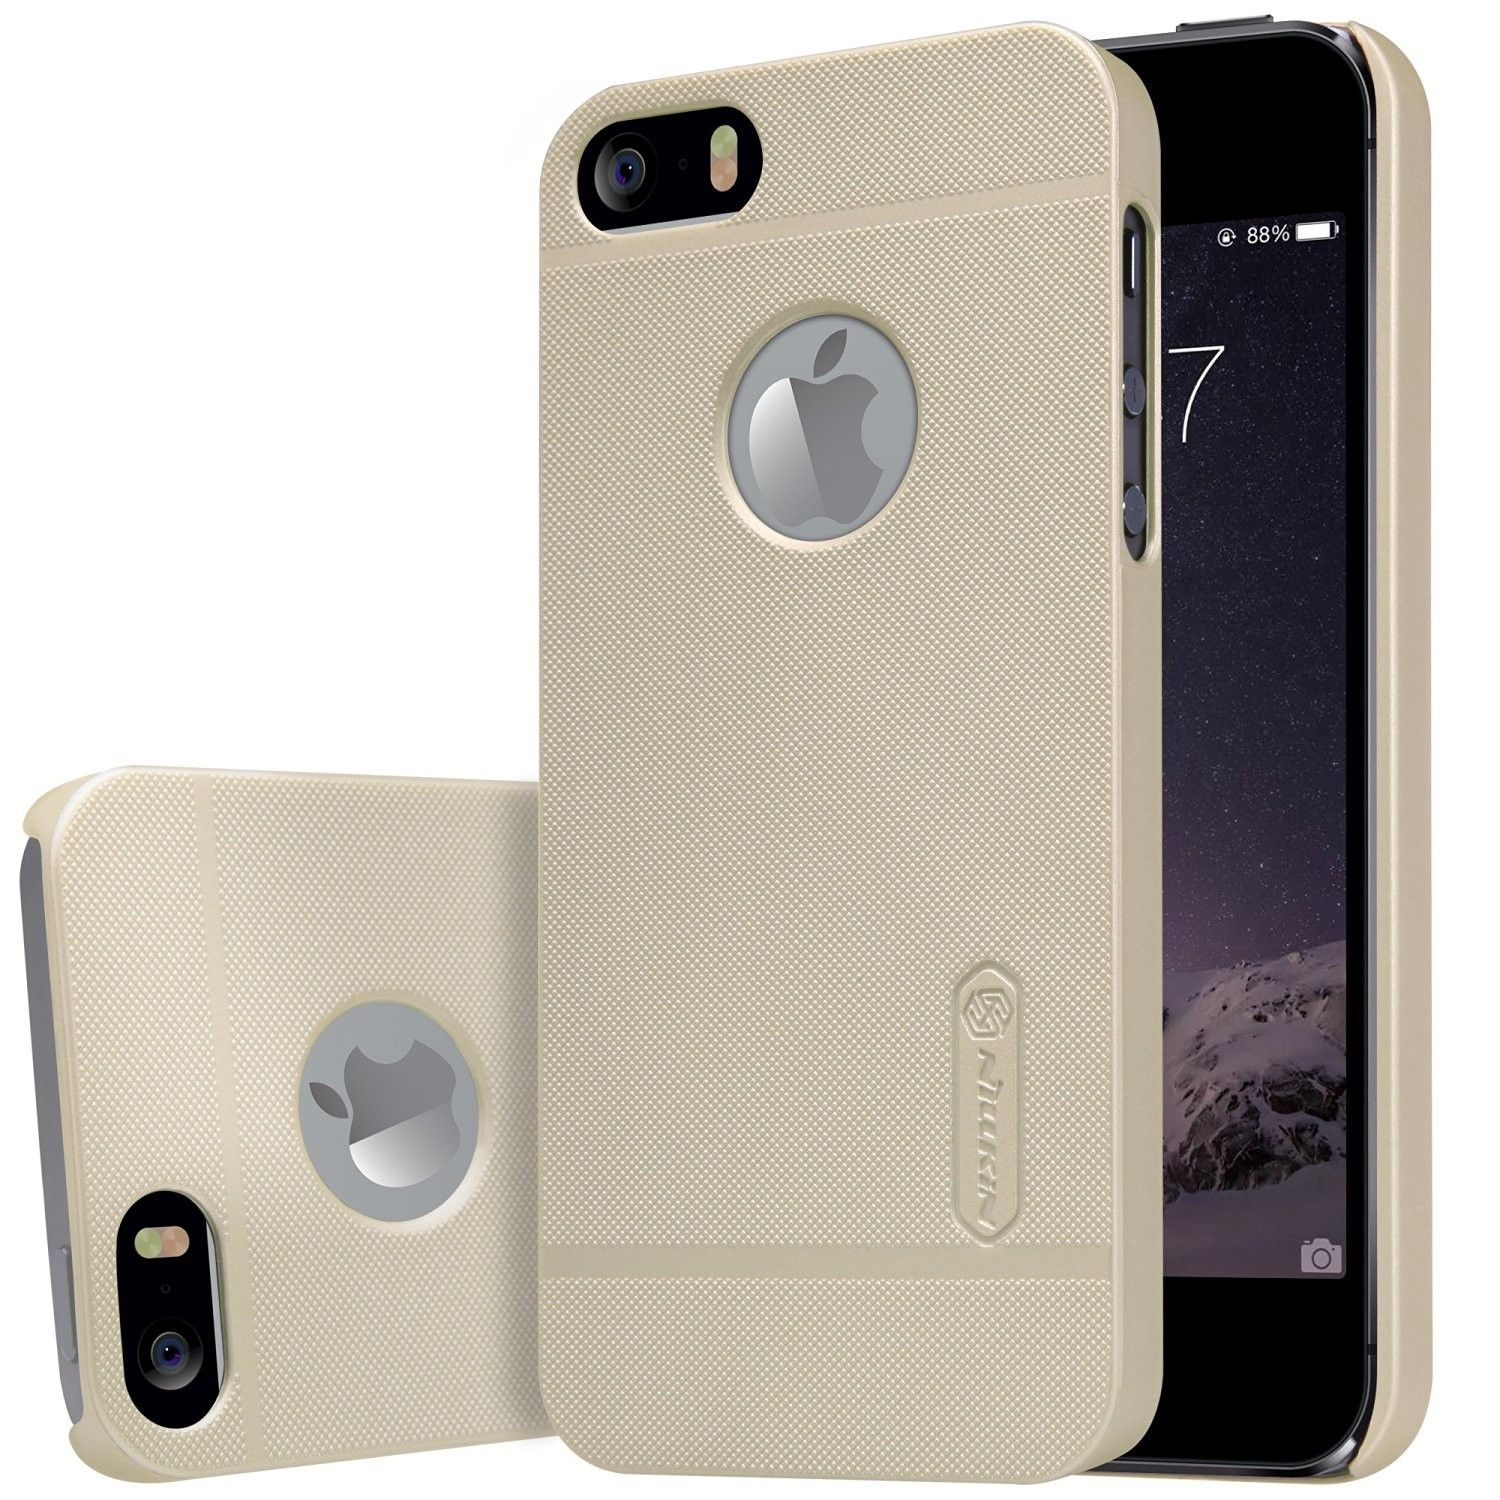 Husa Apple iPhone 5/5S/SE Nillkin Frosted Shield Auriu + Folie de protectie